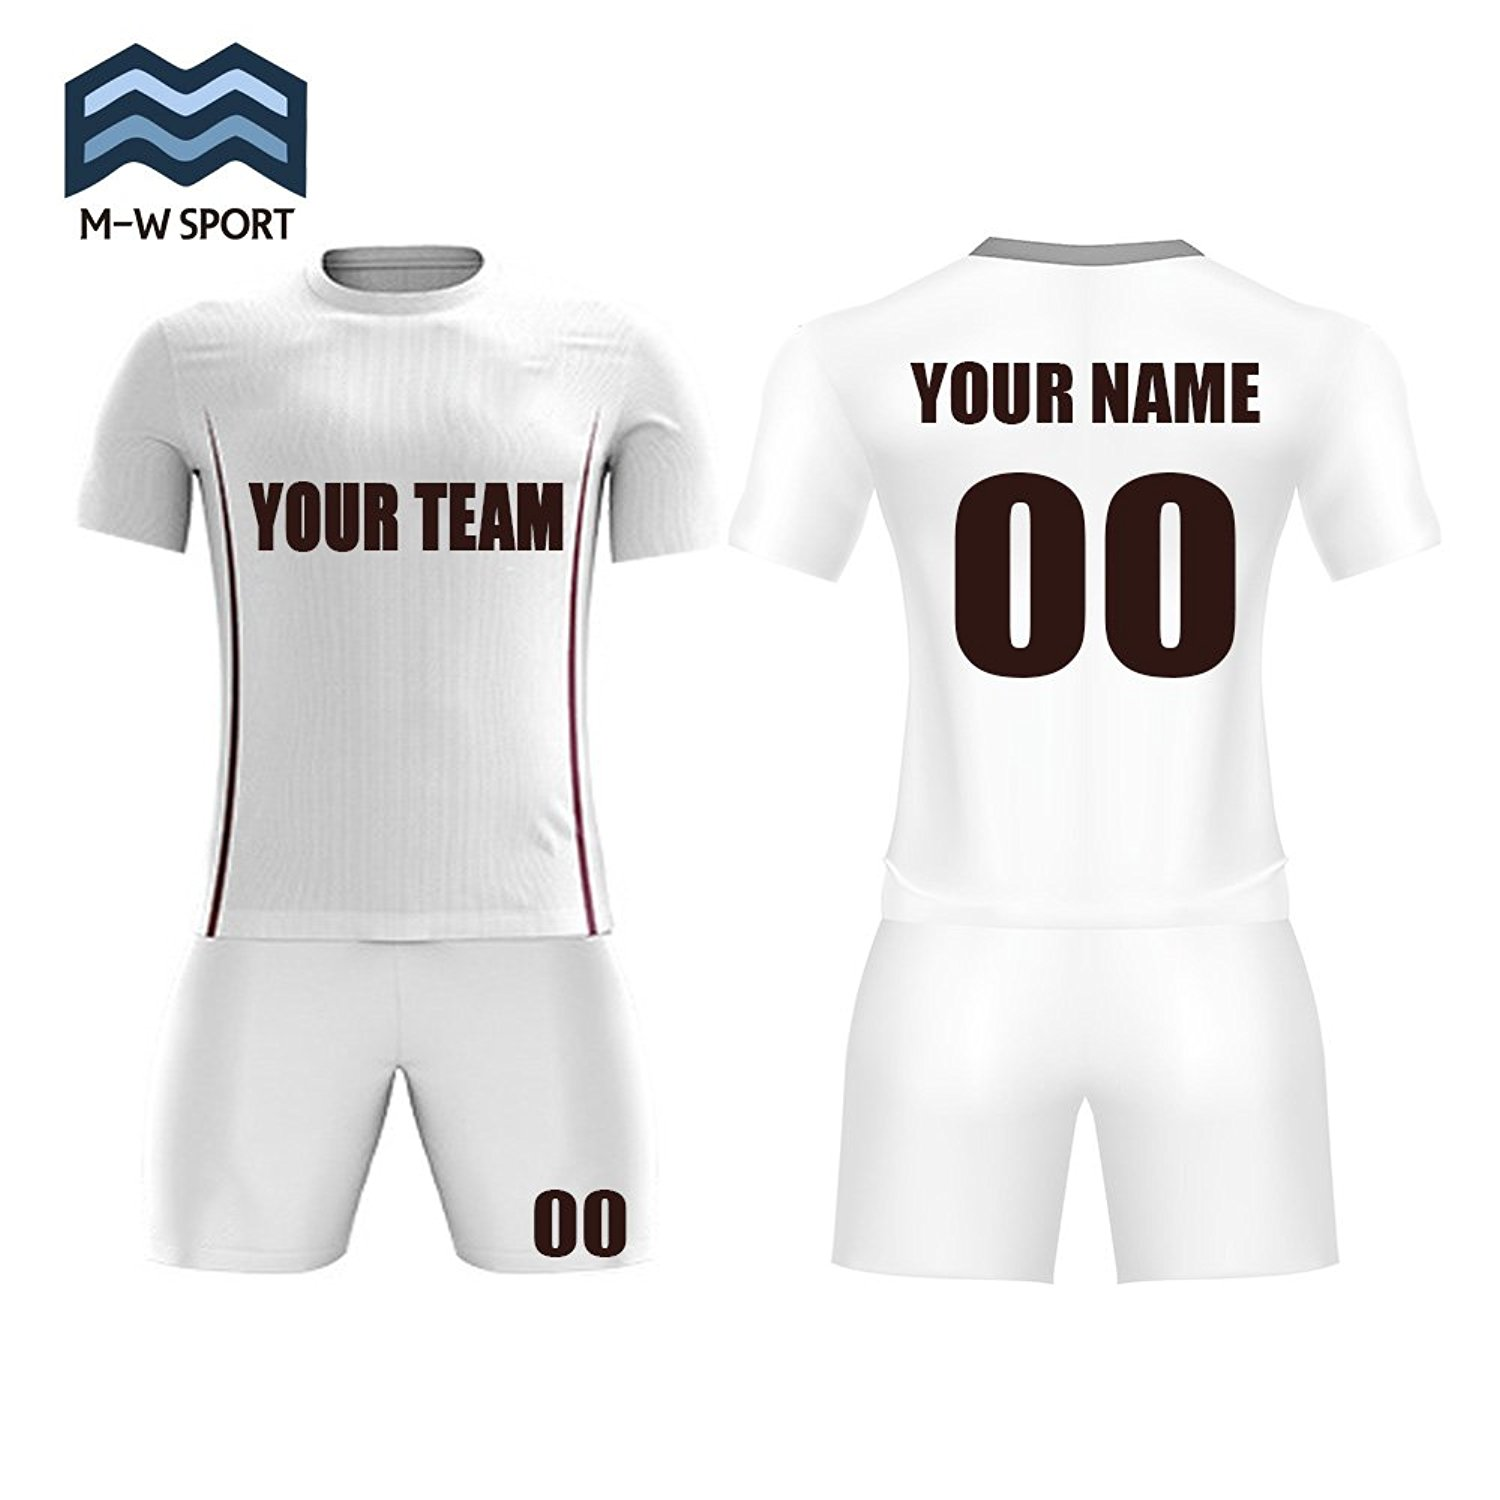 a6390db90fa4c Get Quotations · M-W Sports Custom Soccer T-Shirts and Shorts Full  Sublimation Quick Dry Sport Uniform